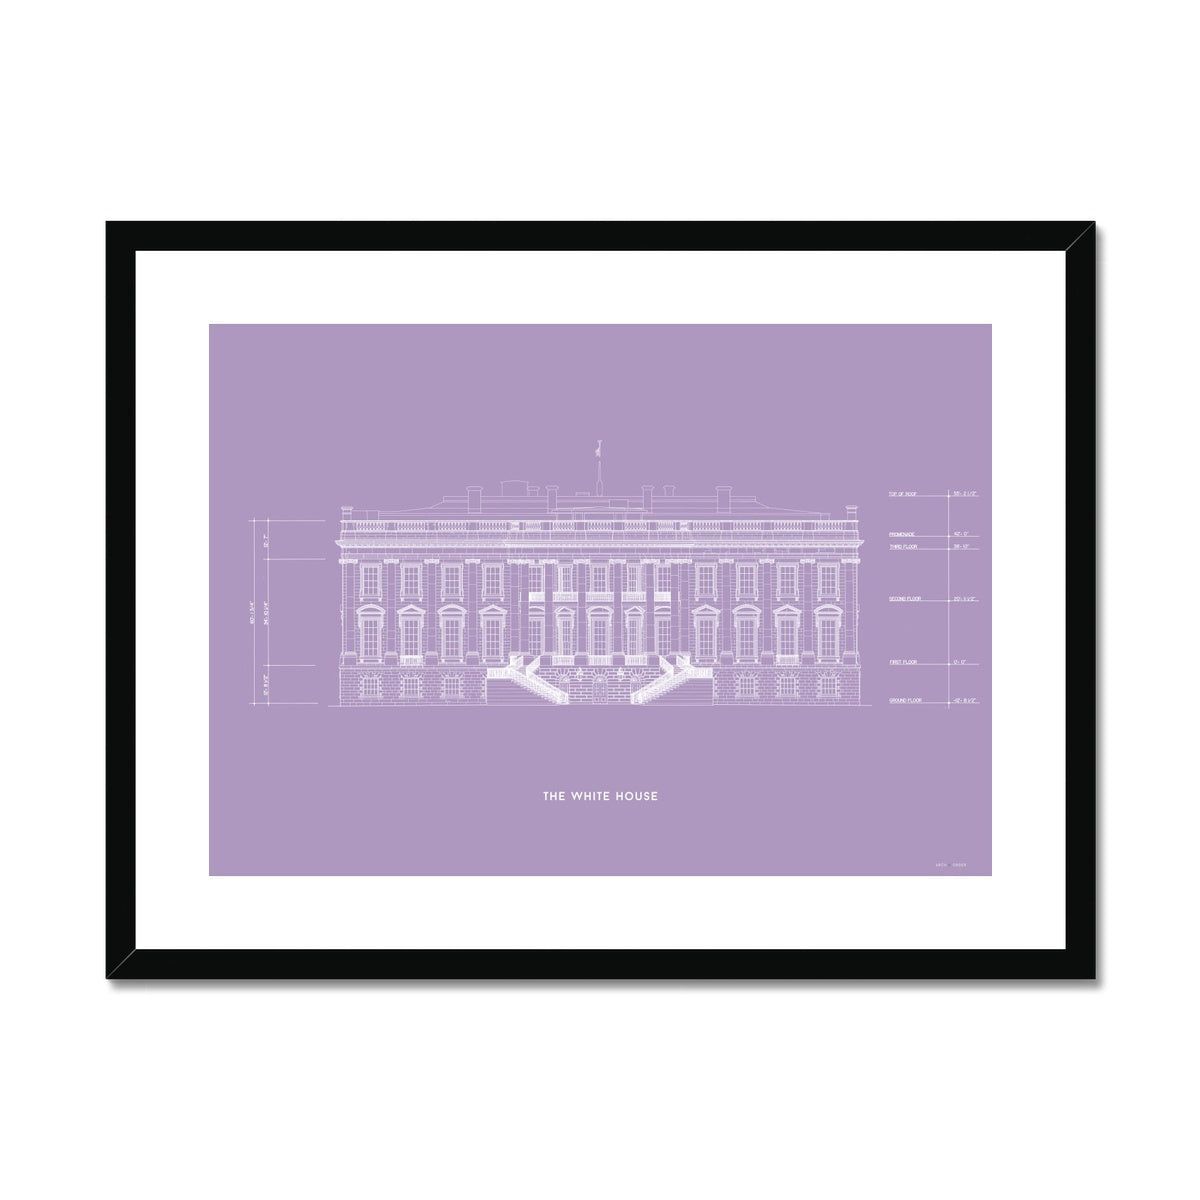 The White House South Elevation - Lavender -  Framed & Mounted Print